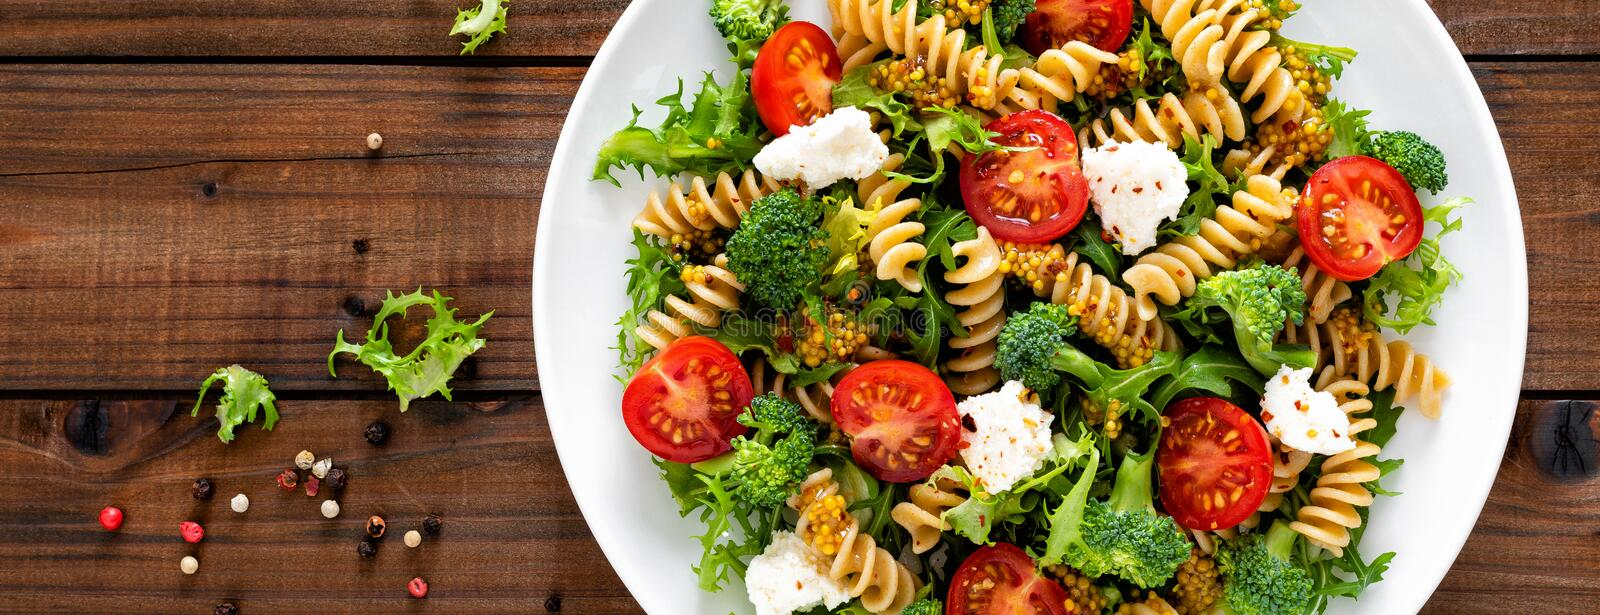 Italian pasta salad with wholegrain fusilli, fresh tomato, cheese, lettuce and broccoli on wooden rustic background. Mediterranean cuisine. Cooking lunch stock photos